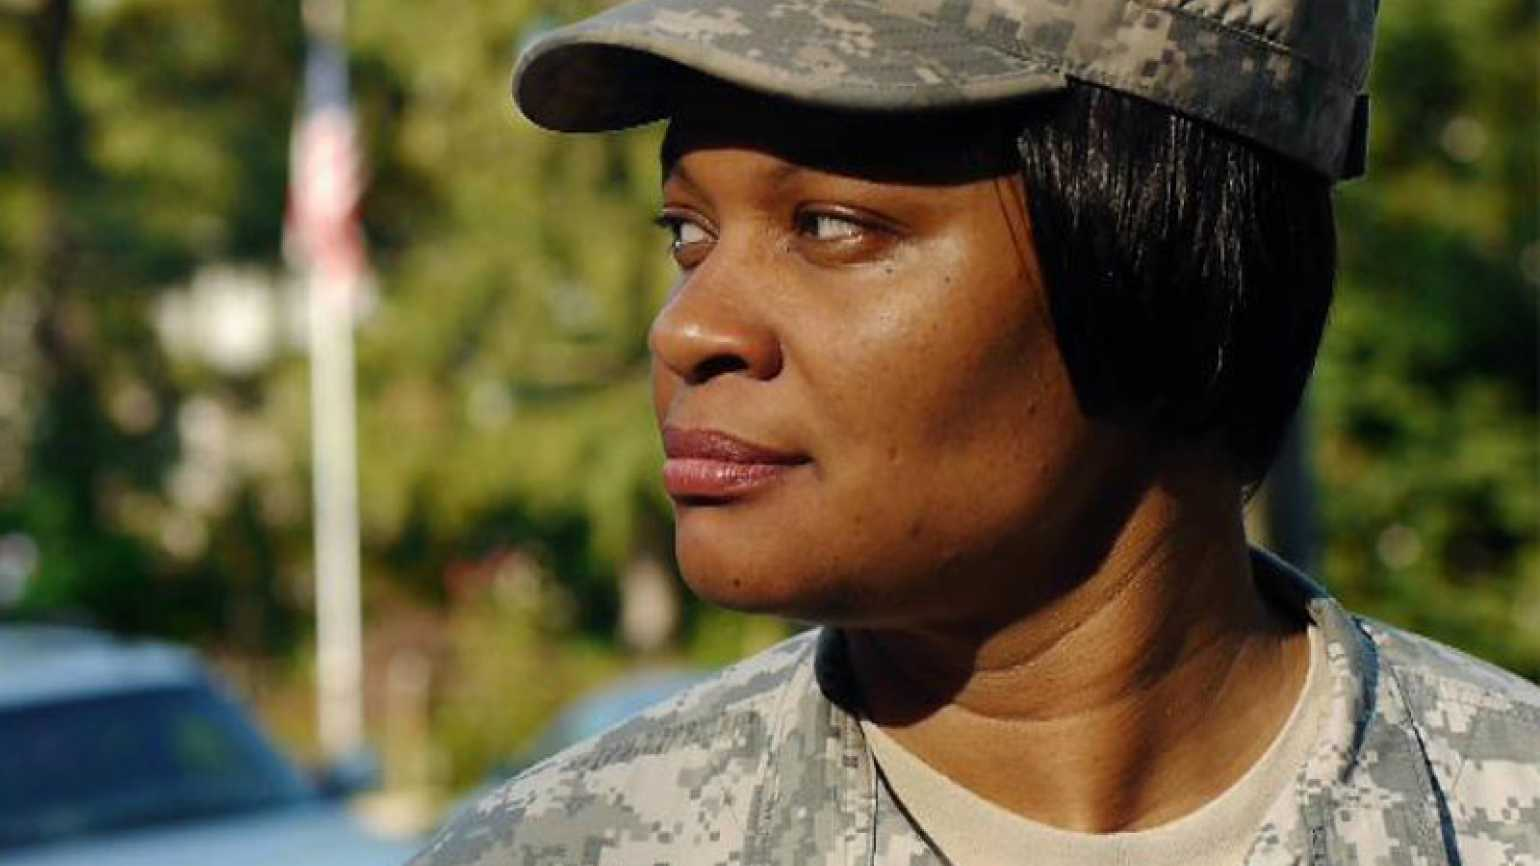 Veteran Jas Boothe in her Army uniform